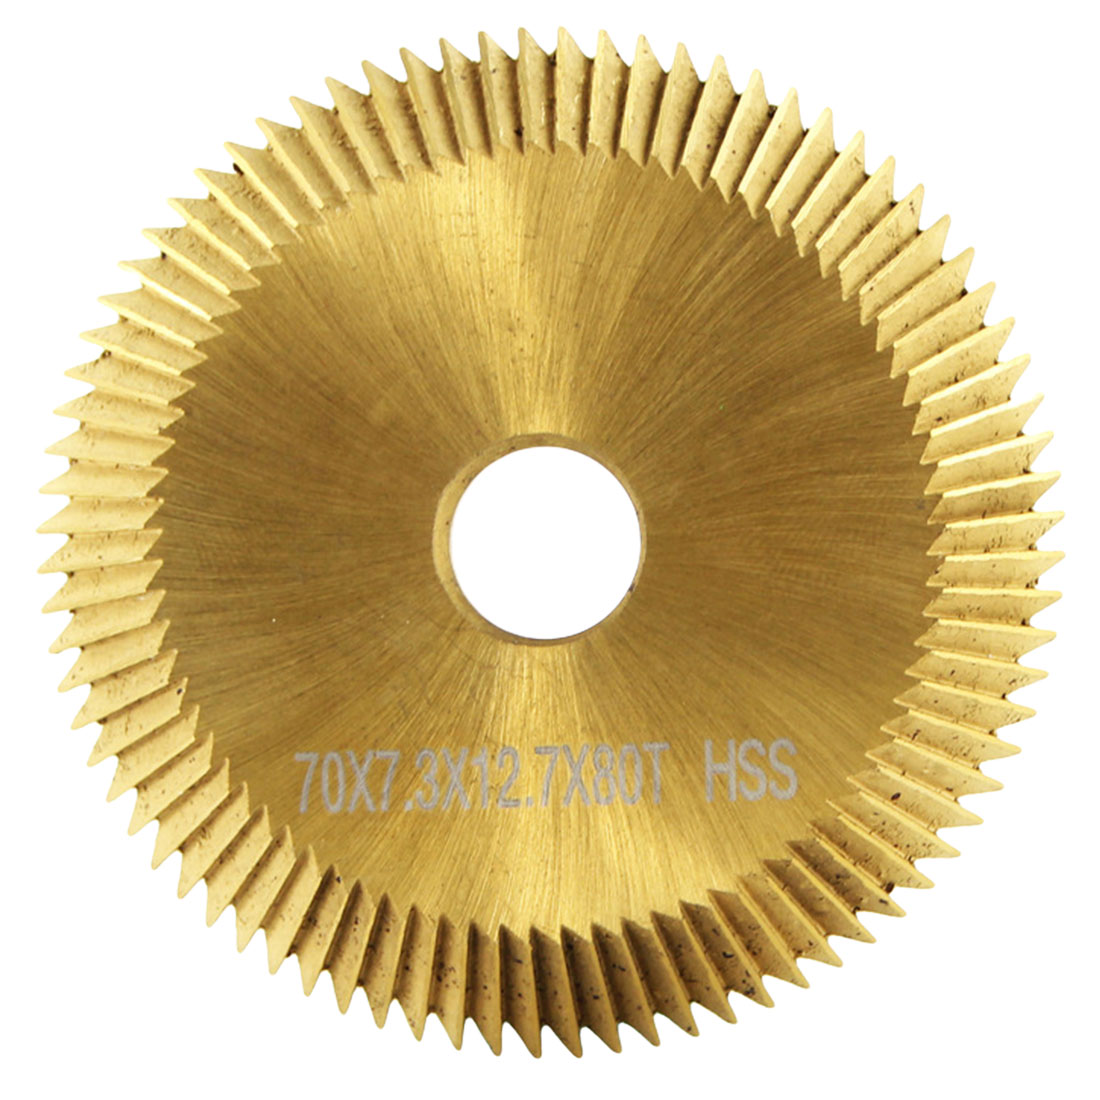 HSS Cutting Saw Blade 80T Double-sided Tooth For Cutting Machine Titanium Plating 12.7mm X 70mm